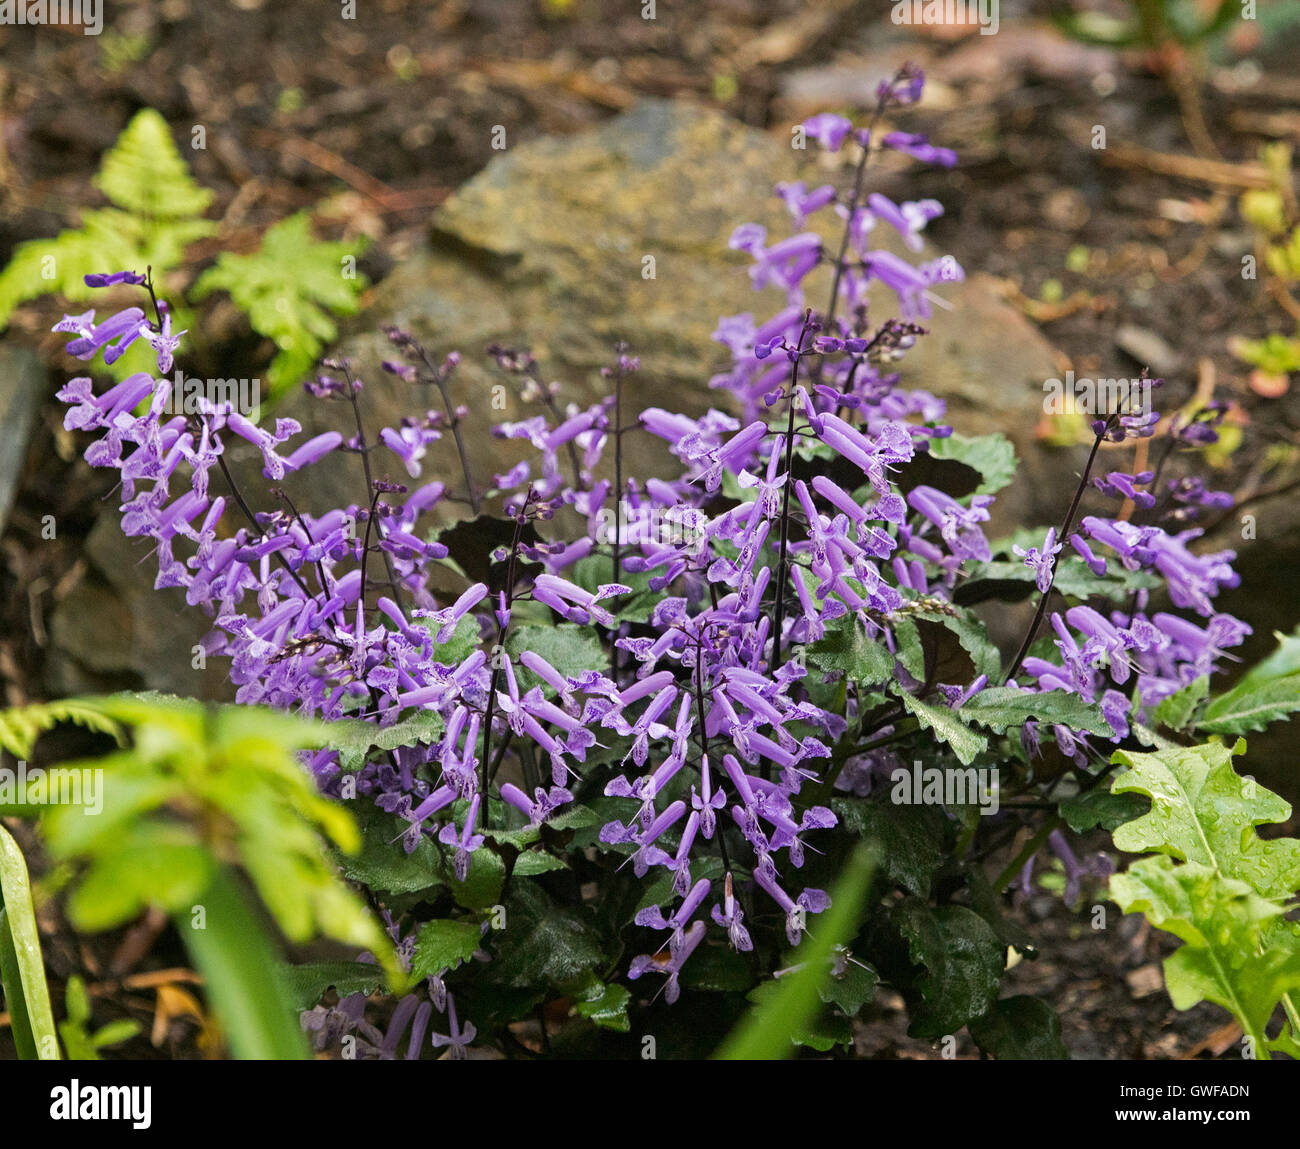 Cluster of spikes of bright purple flowers dark green leaves of cluster of spikes of bright purple flowers dark green leaves of perennialgarden plant plectranthus plepalila mona lavender mightylinksfo